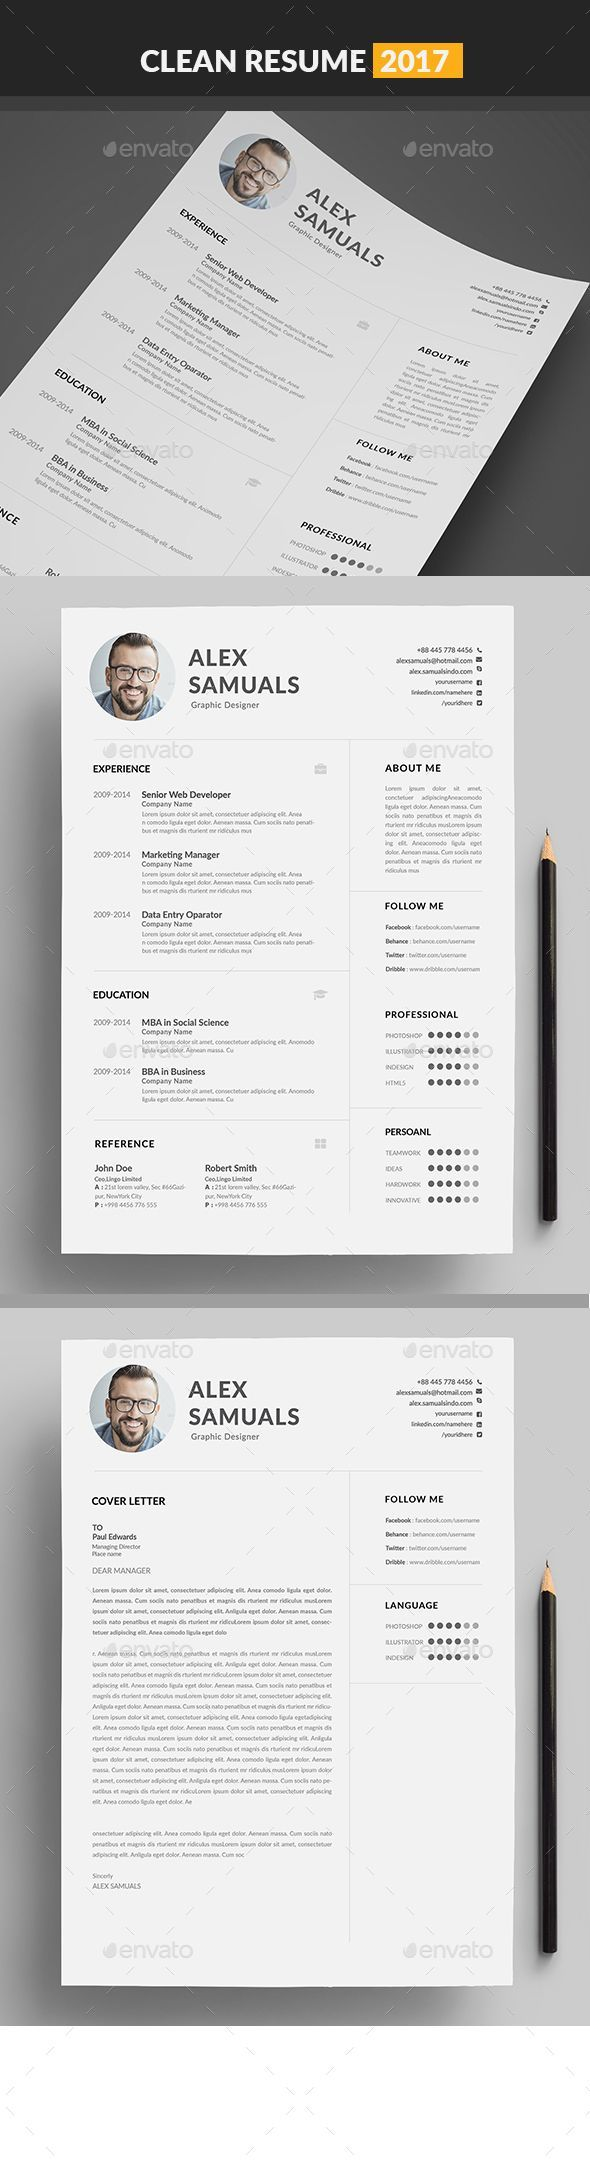 how to write a business cover letter%0A Resume Template  Resumes Stationery